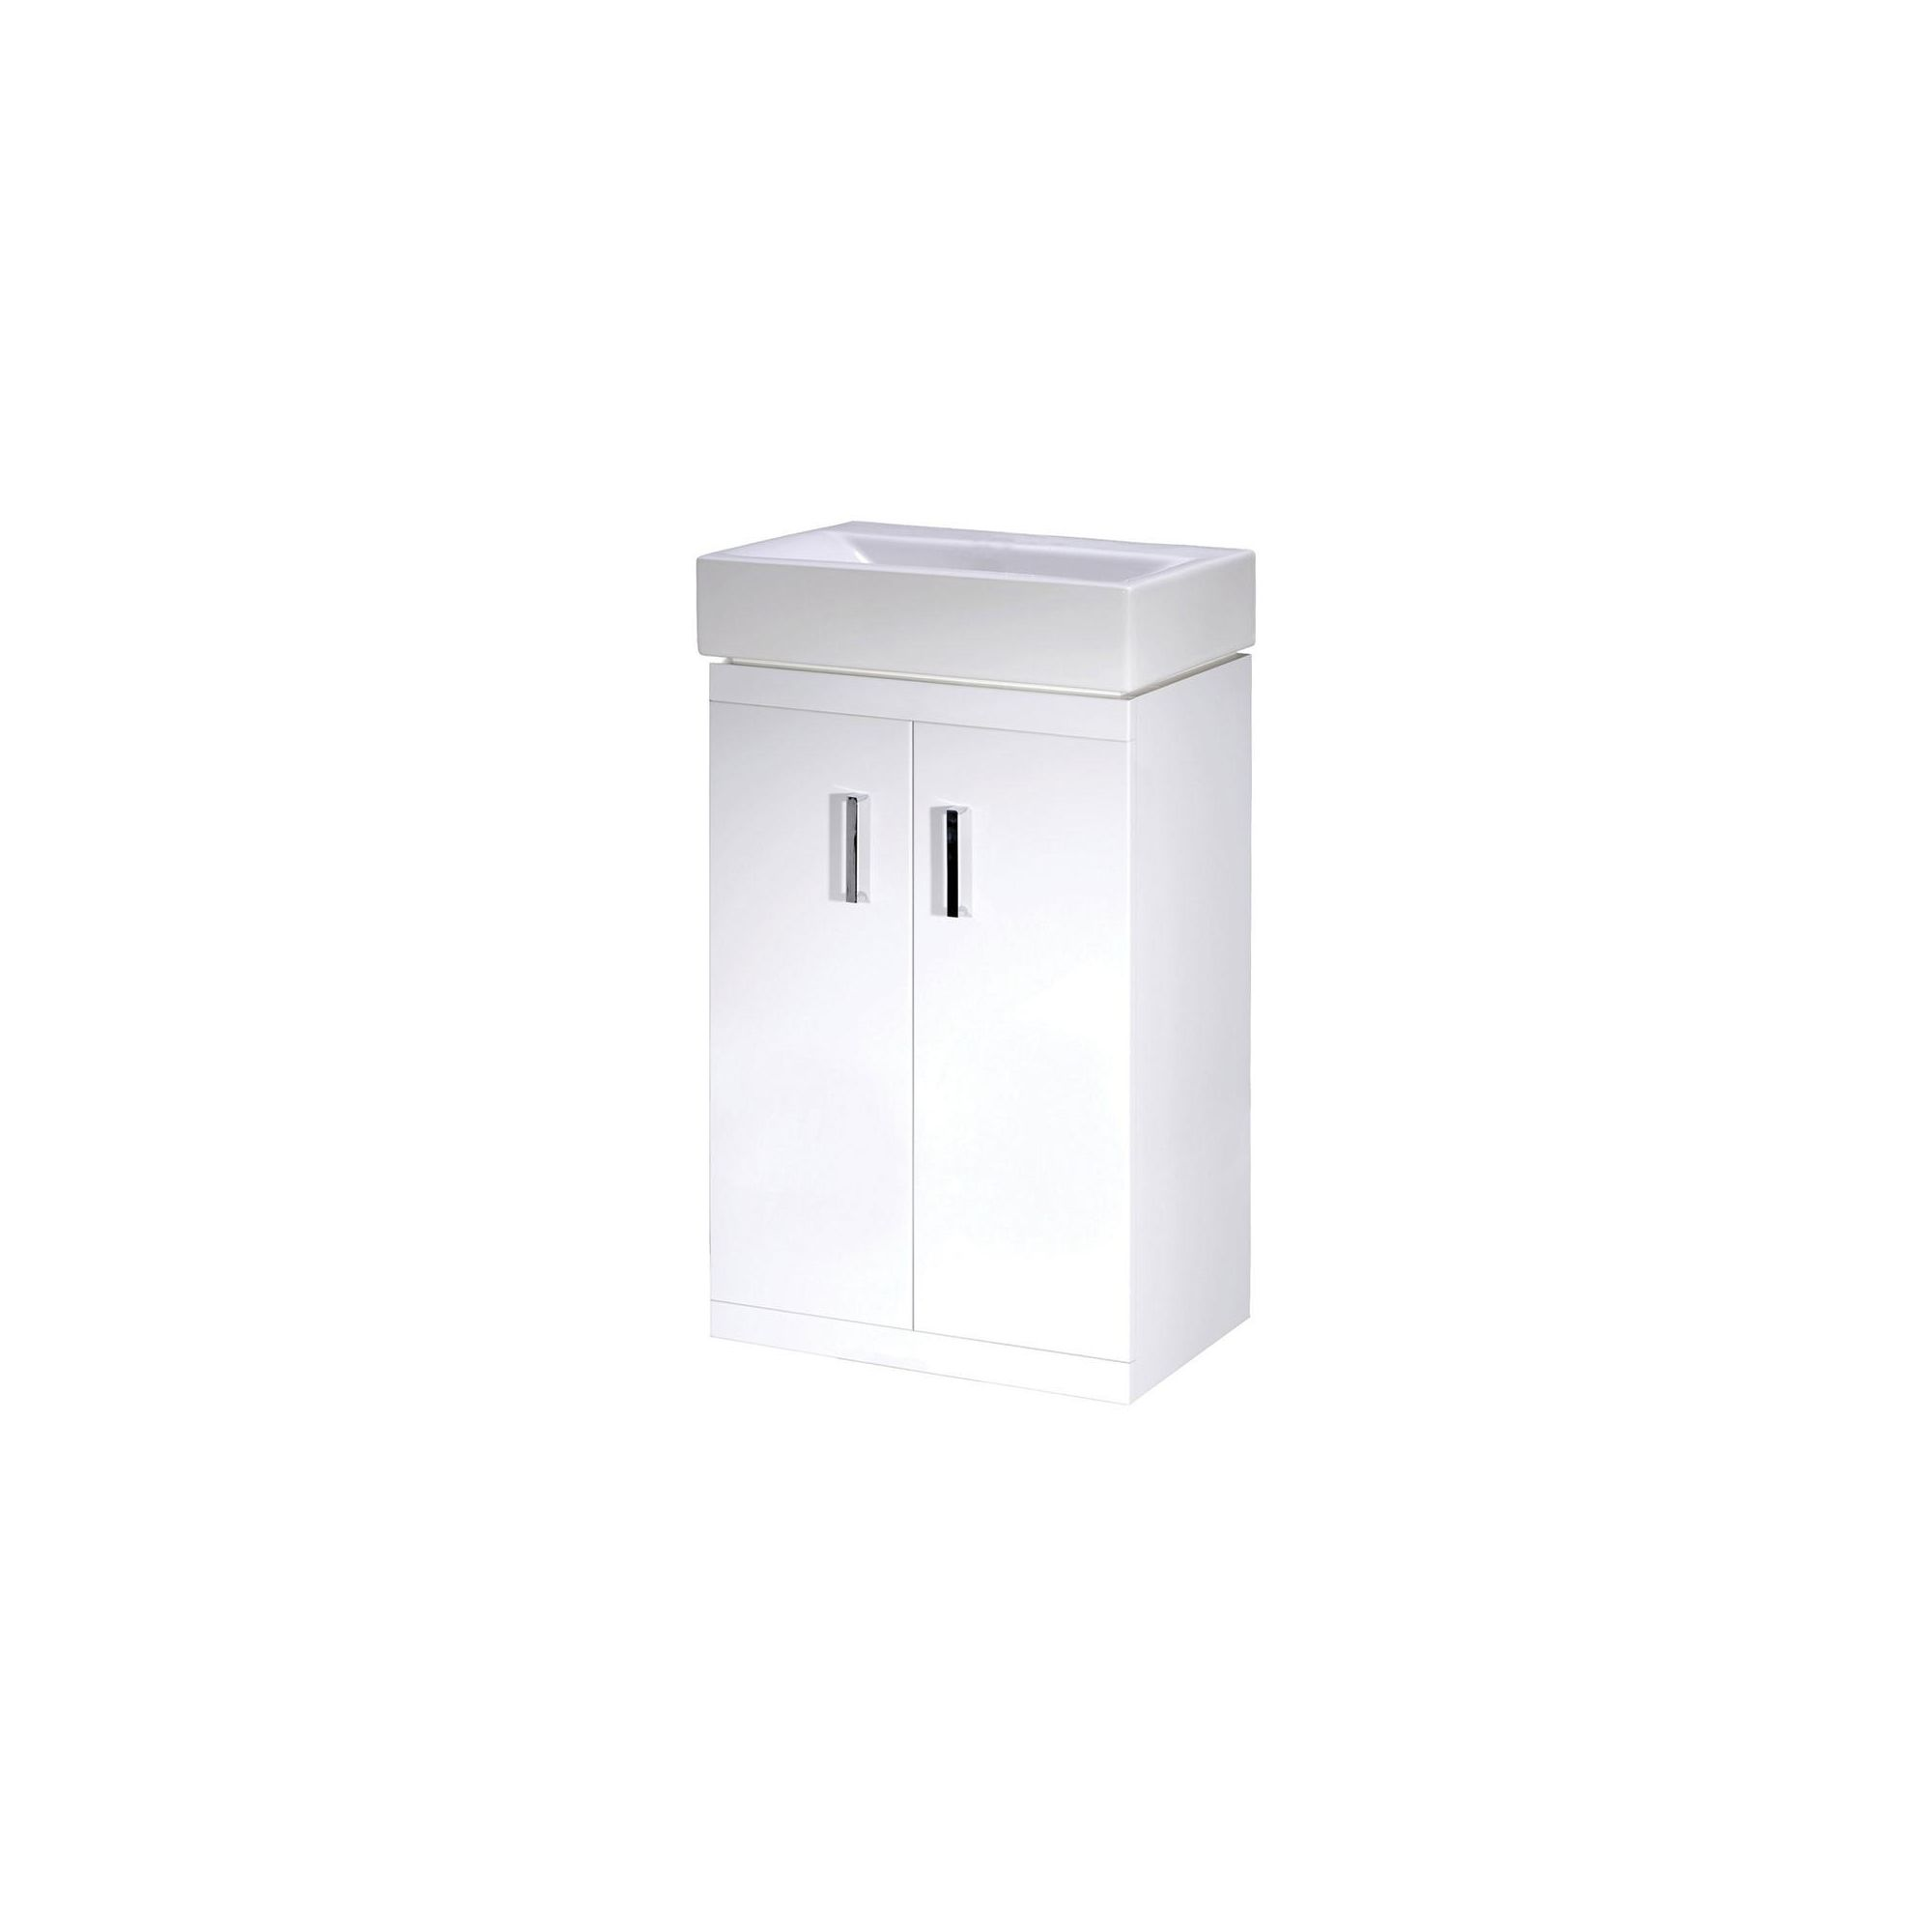 Premier Checkers Floor Standing Minimalist Basin Vanity Unit White 450mm Deep